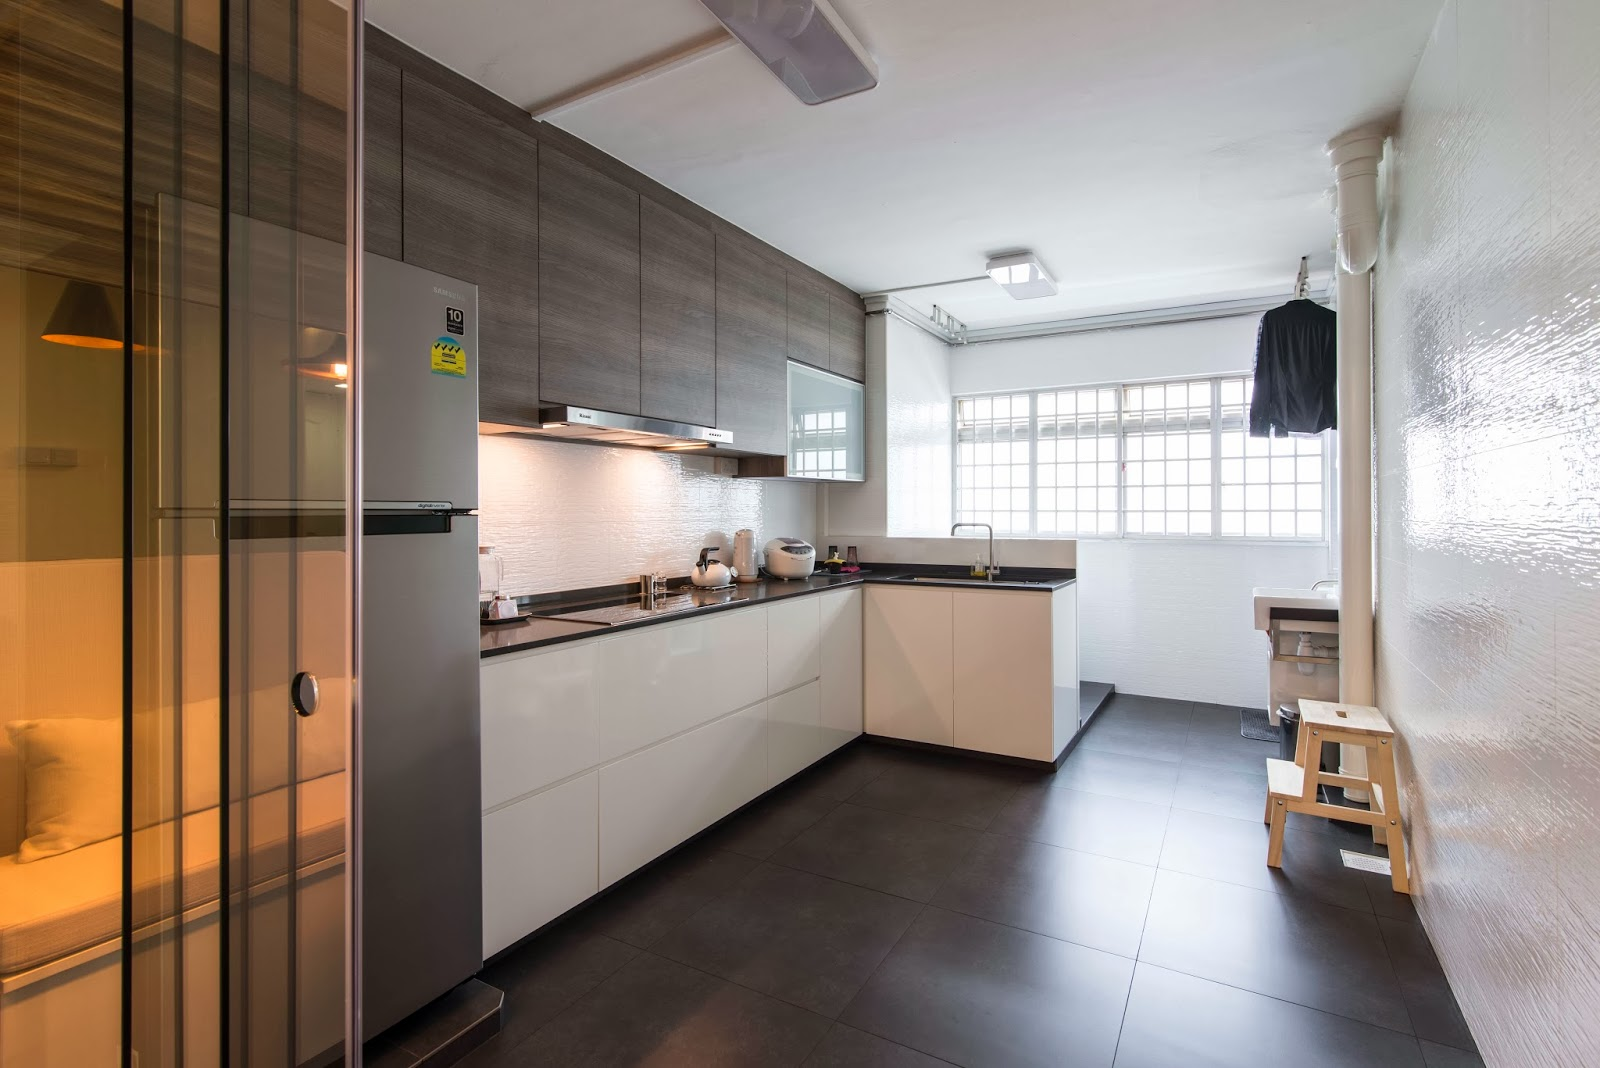 Kitchen Cabinet Price List Singapore Interior Design Guide Hdb 3 Rooms Interior Design